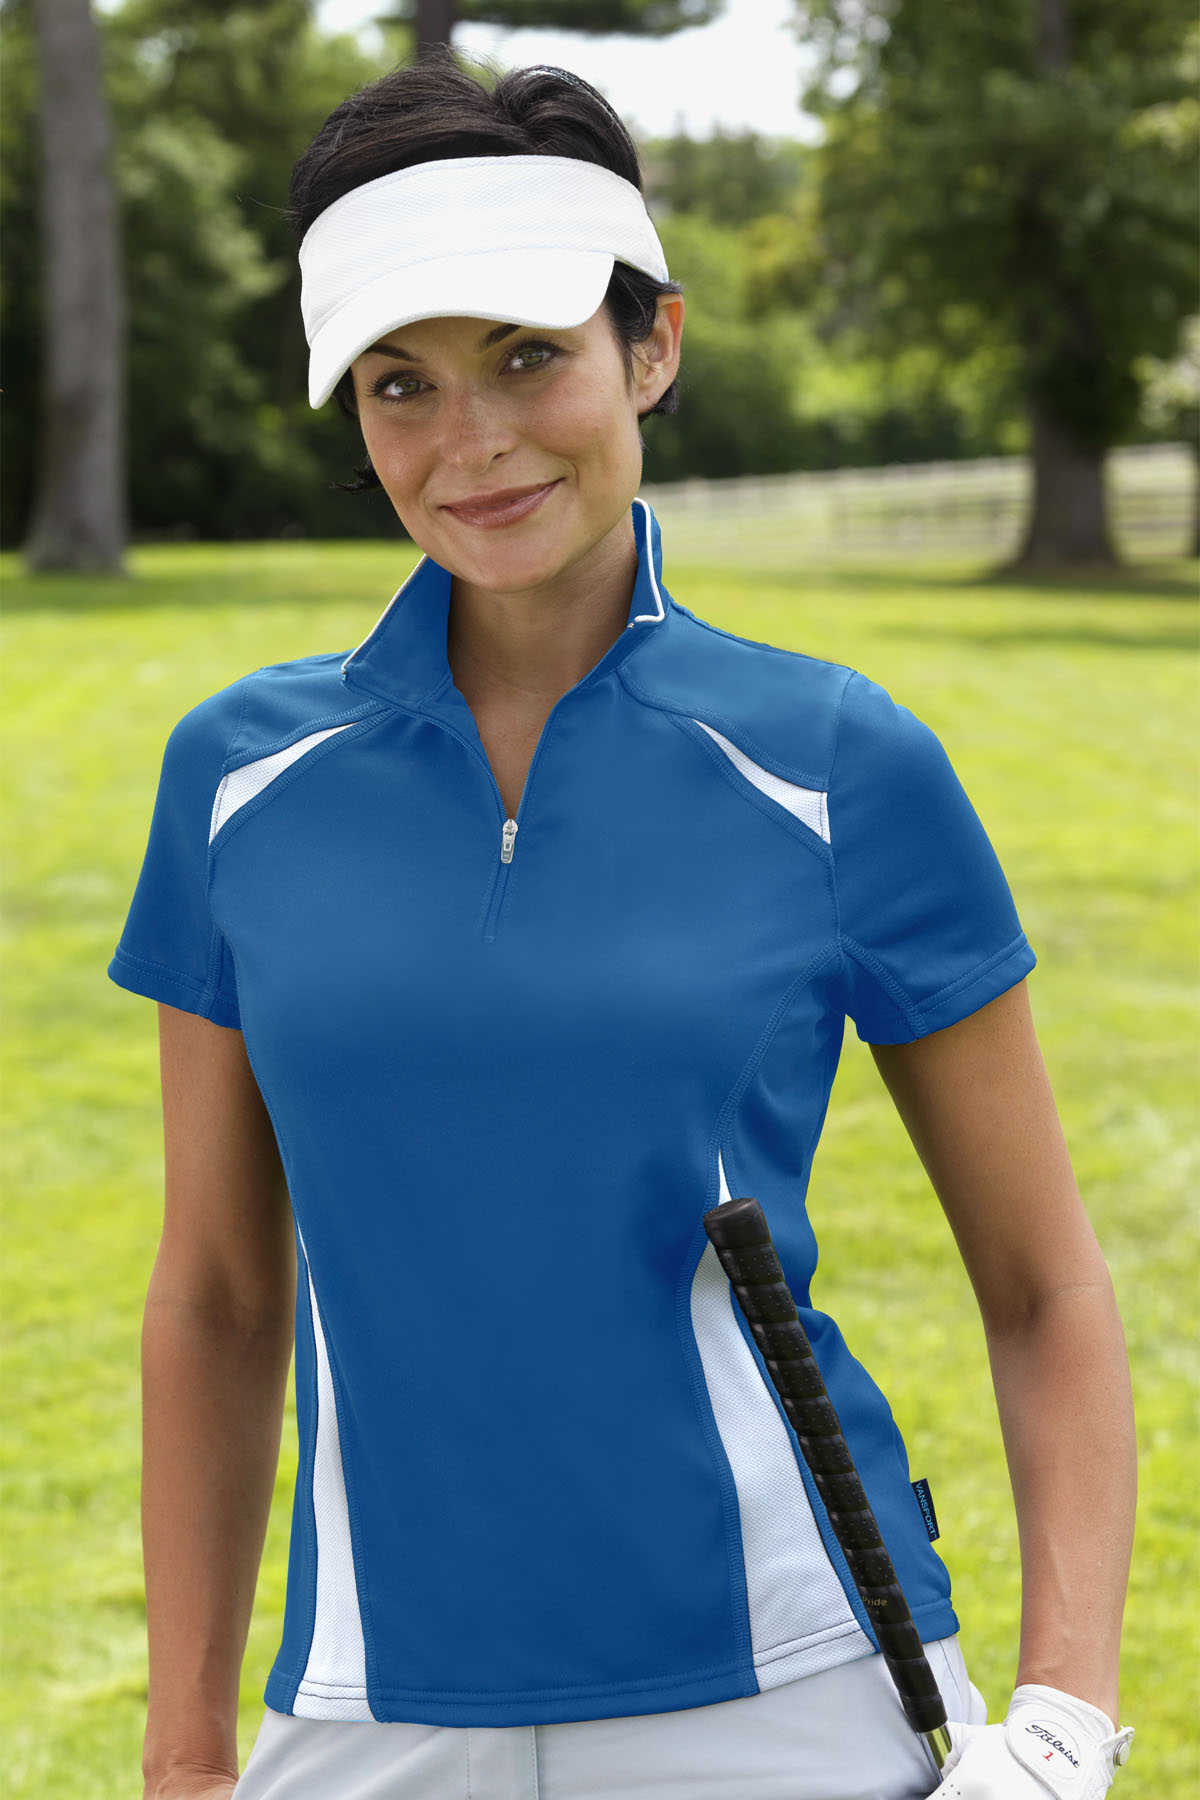 Vansport 2791 - Women's Body Mapped Blocked Polo